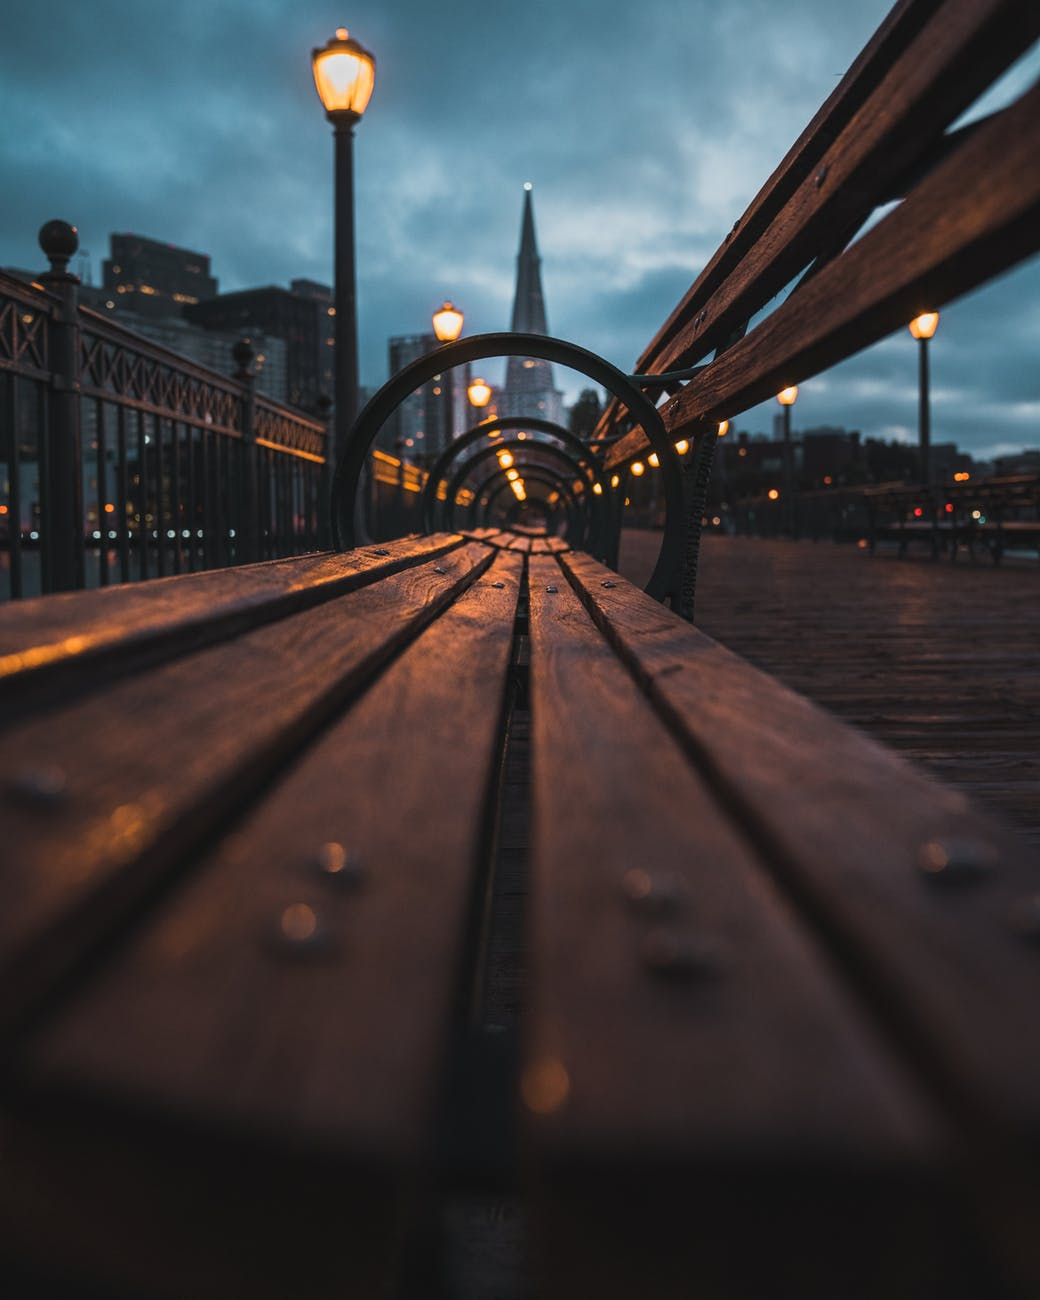 closeup photo of wooden bench near the lamp post during night time